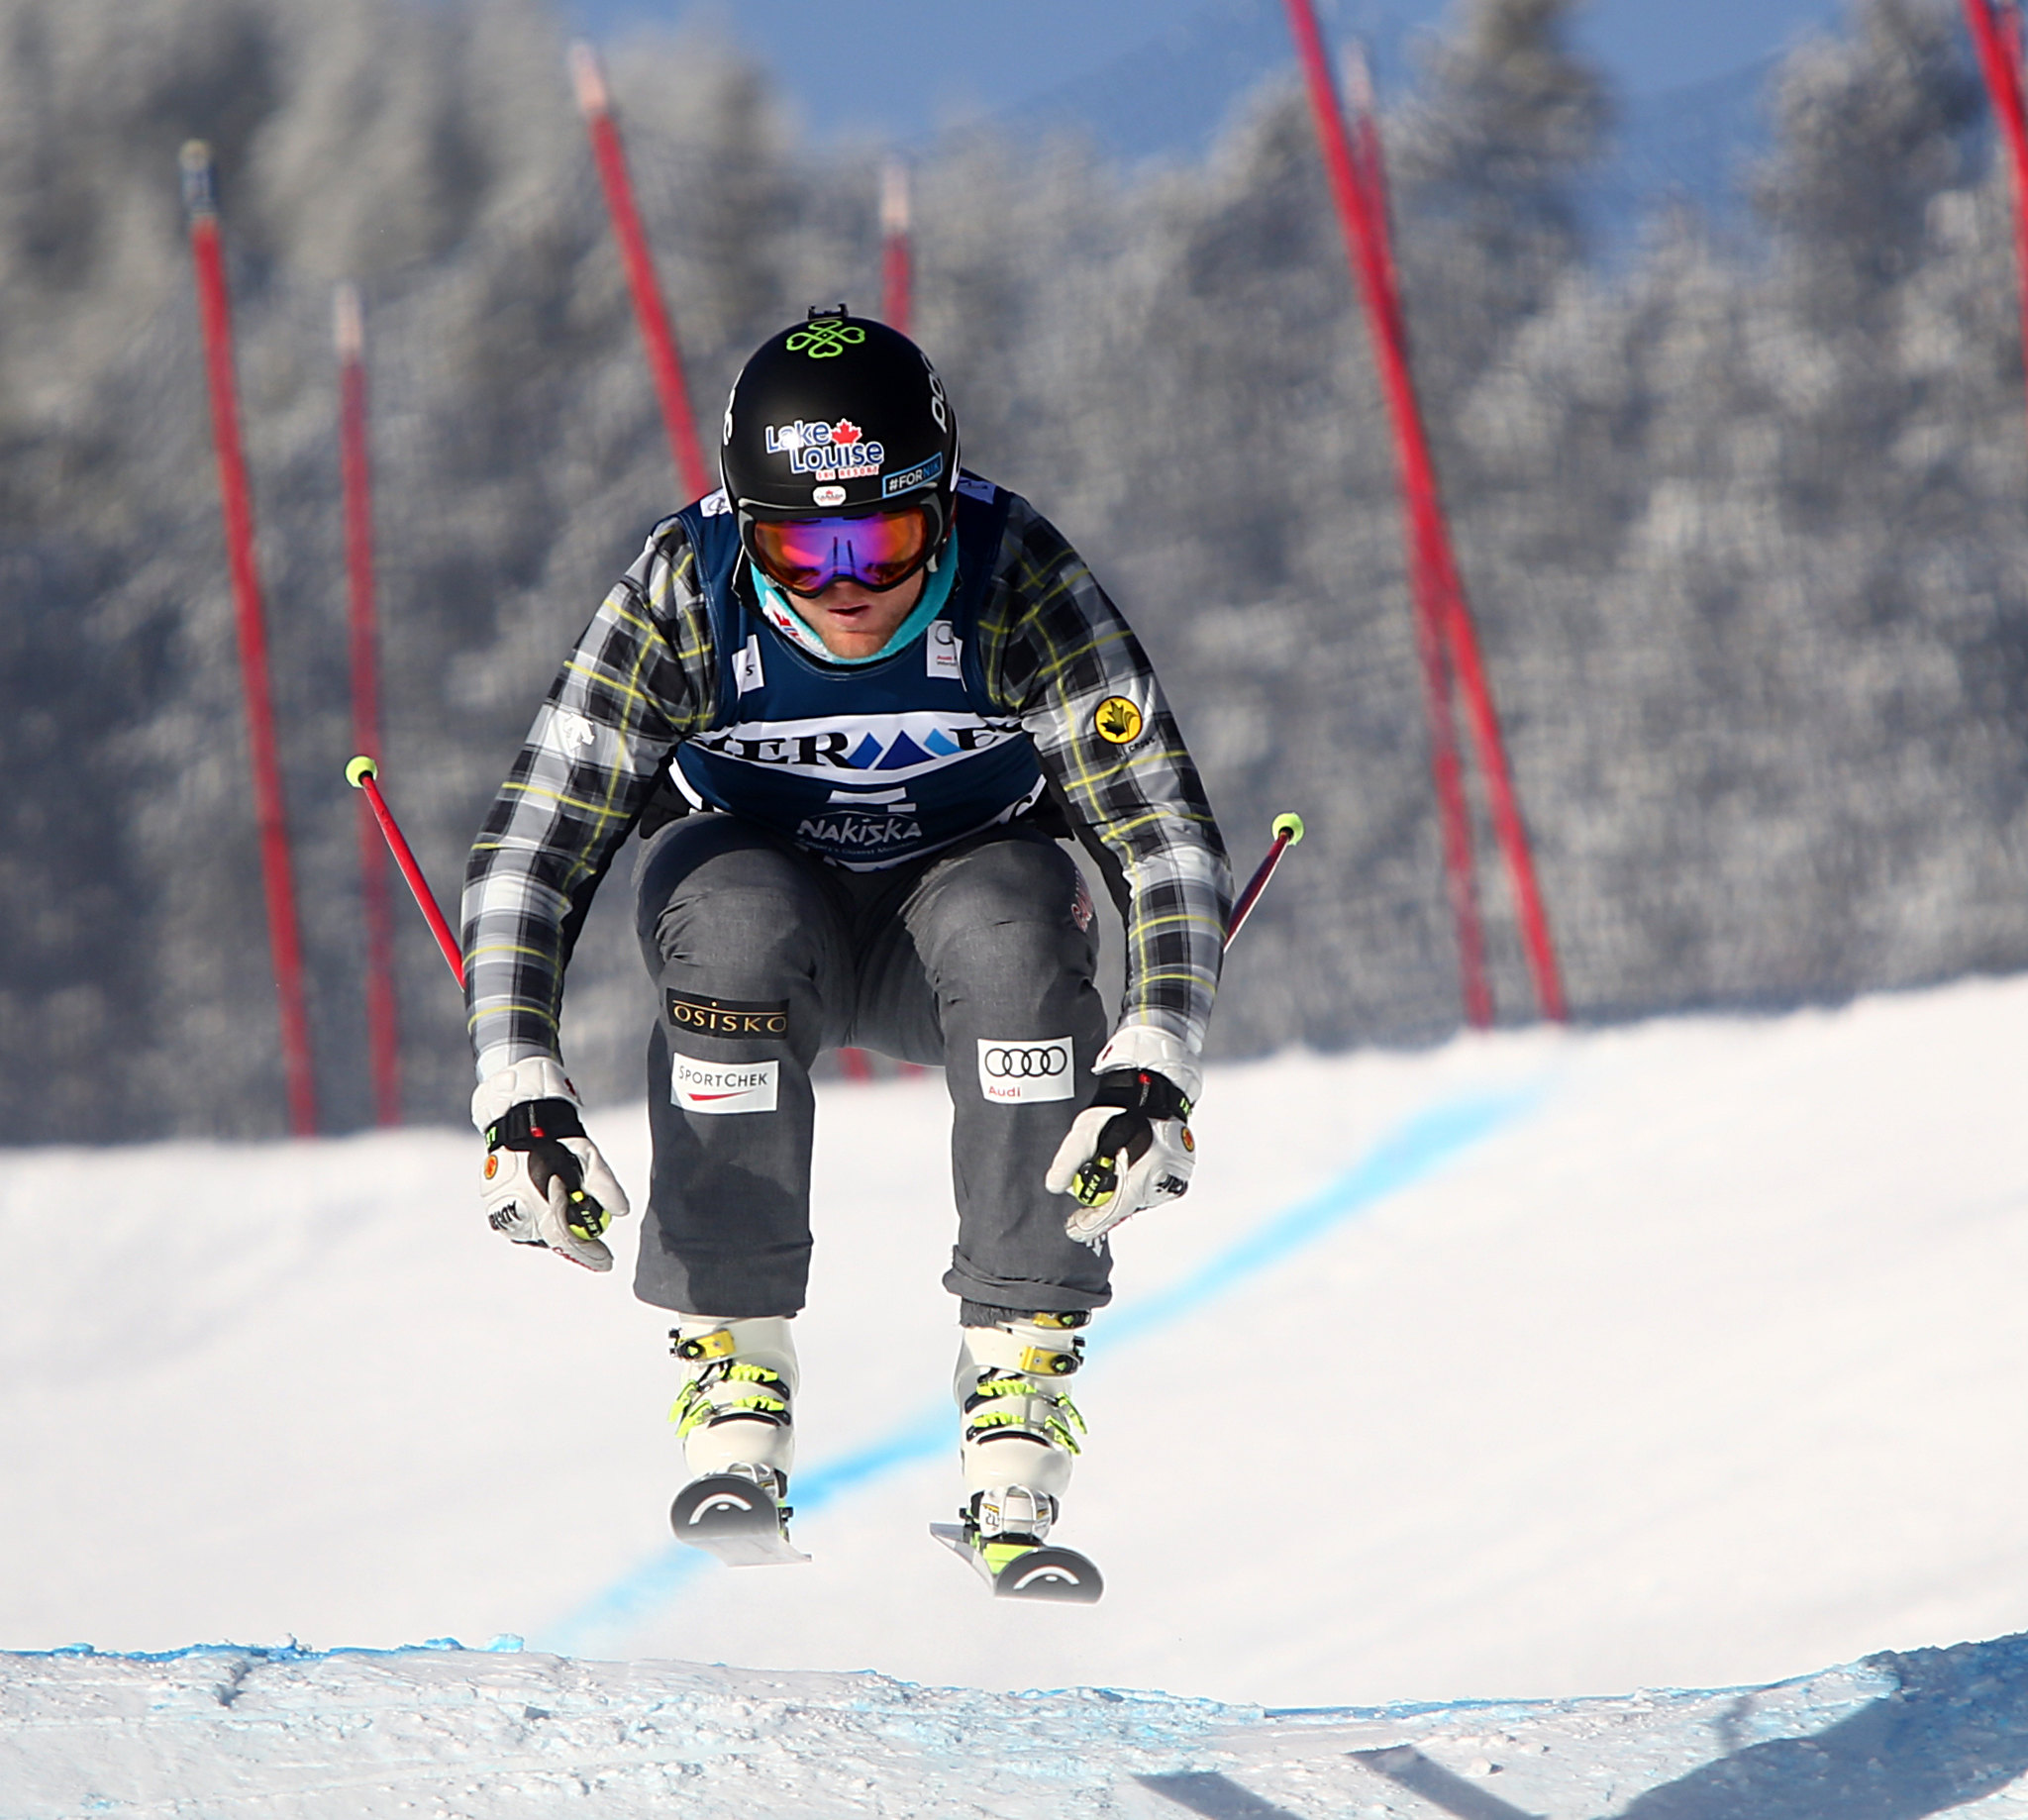 Brady Leman in action during training at the FIS Ski Cross World Cup in Nakiska, CAN